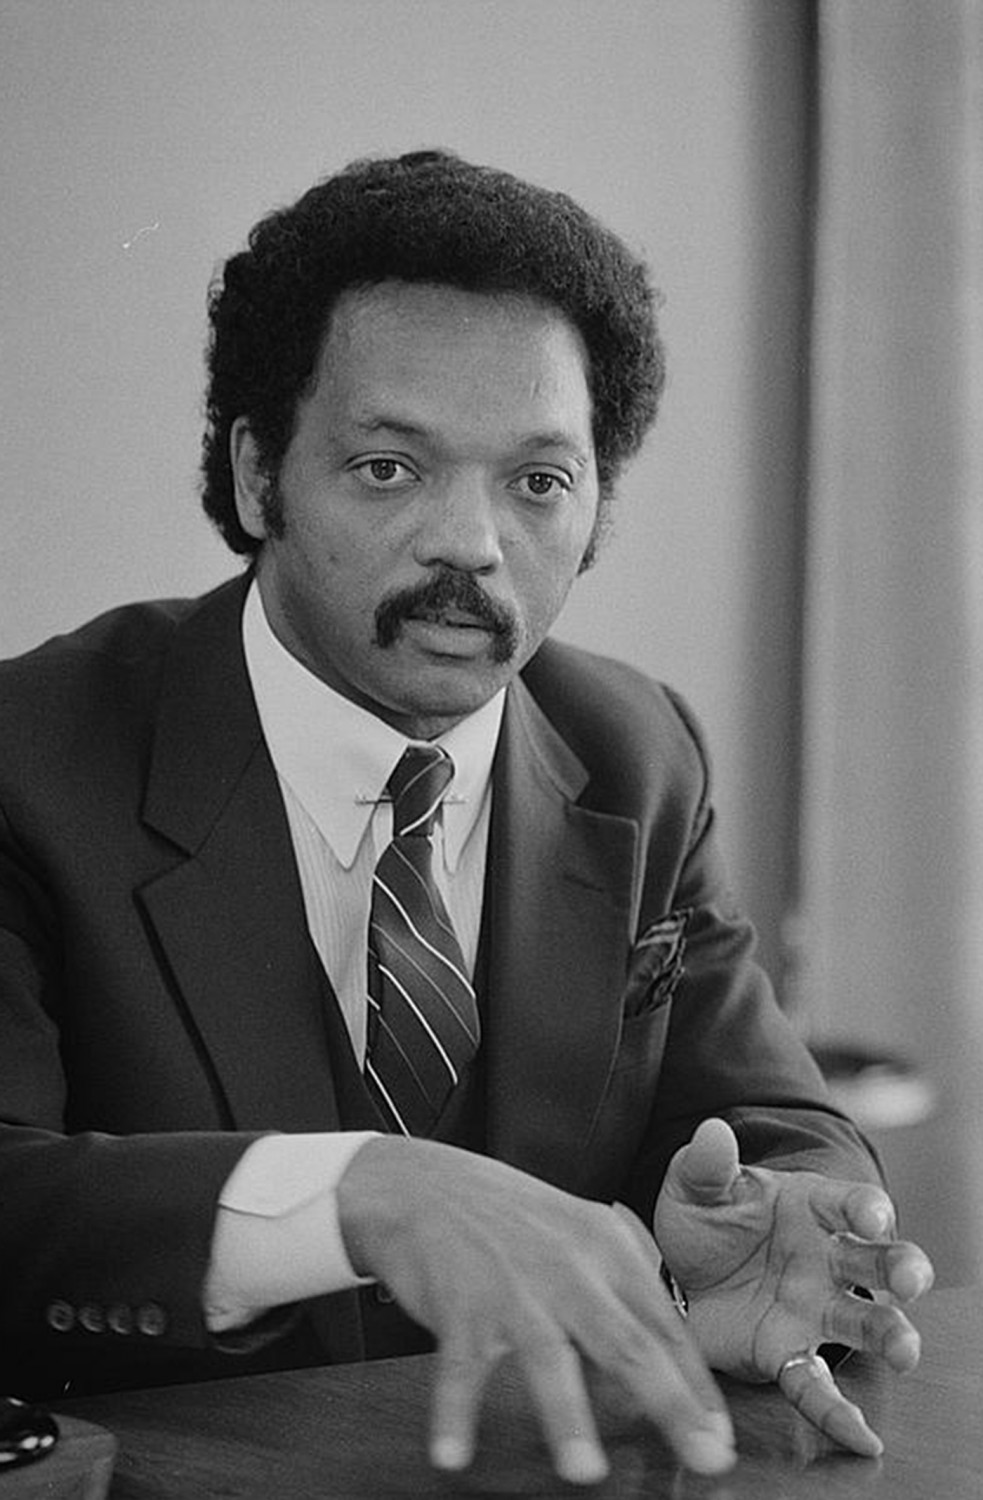 "Jesse Jackson was only the second African American to mount a national campaign for the presidency. His work as a civil rights activist and Baptist minister garnered him a significant following in the African American community, but never enough to secure the Democratic nomination. His Warren K. Leffler, ""IVU w/ [i.e., interview with] Rev. Jesse Jackson,"" July 1, 1983. Library of Congress, http://www.loc.gov/pictures/item/2003688127/."